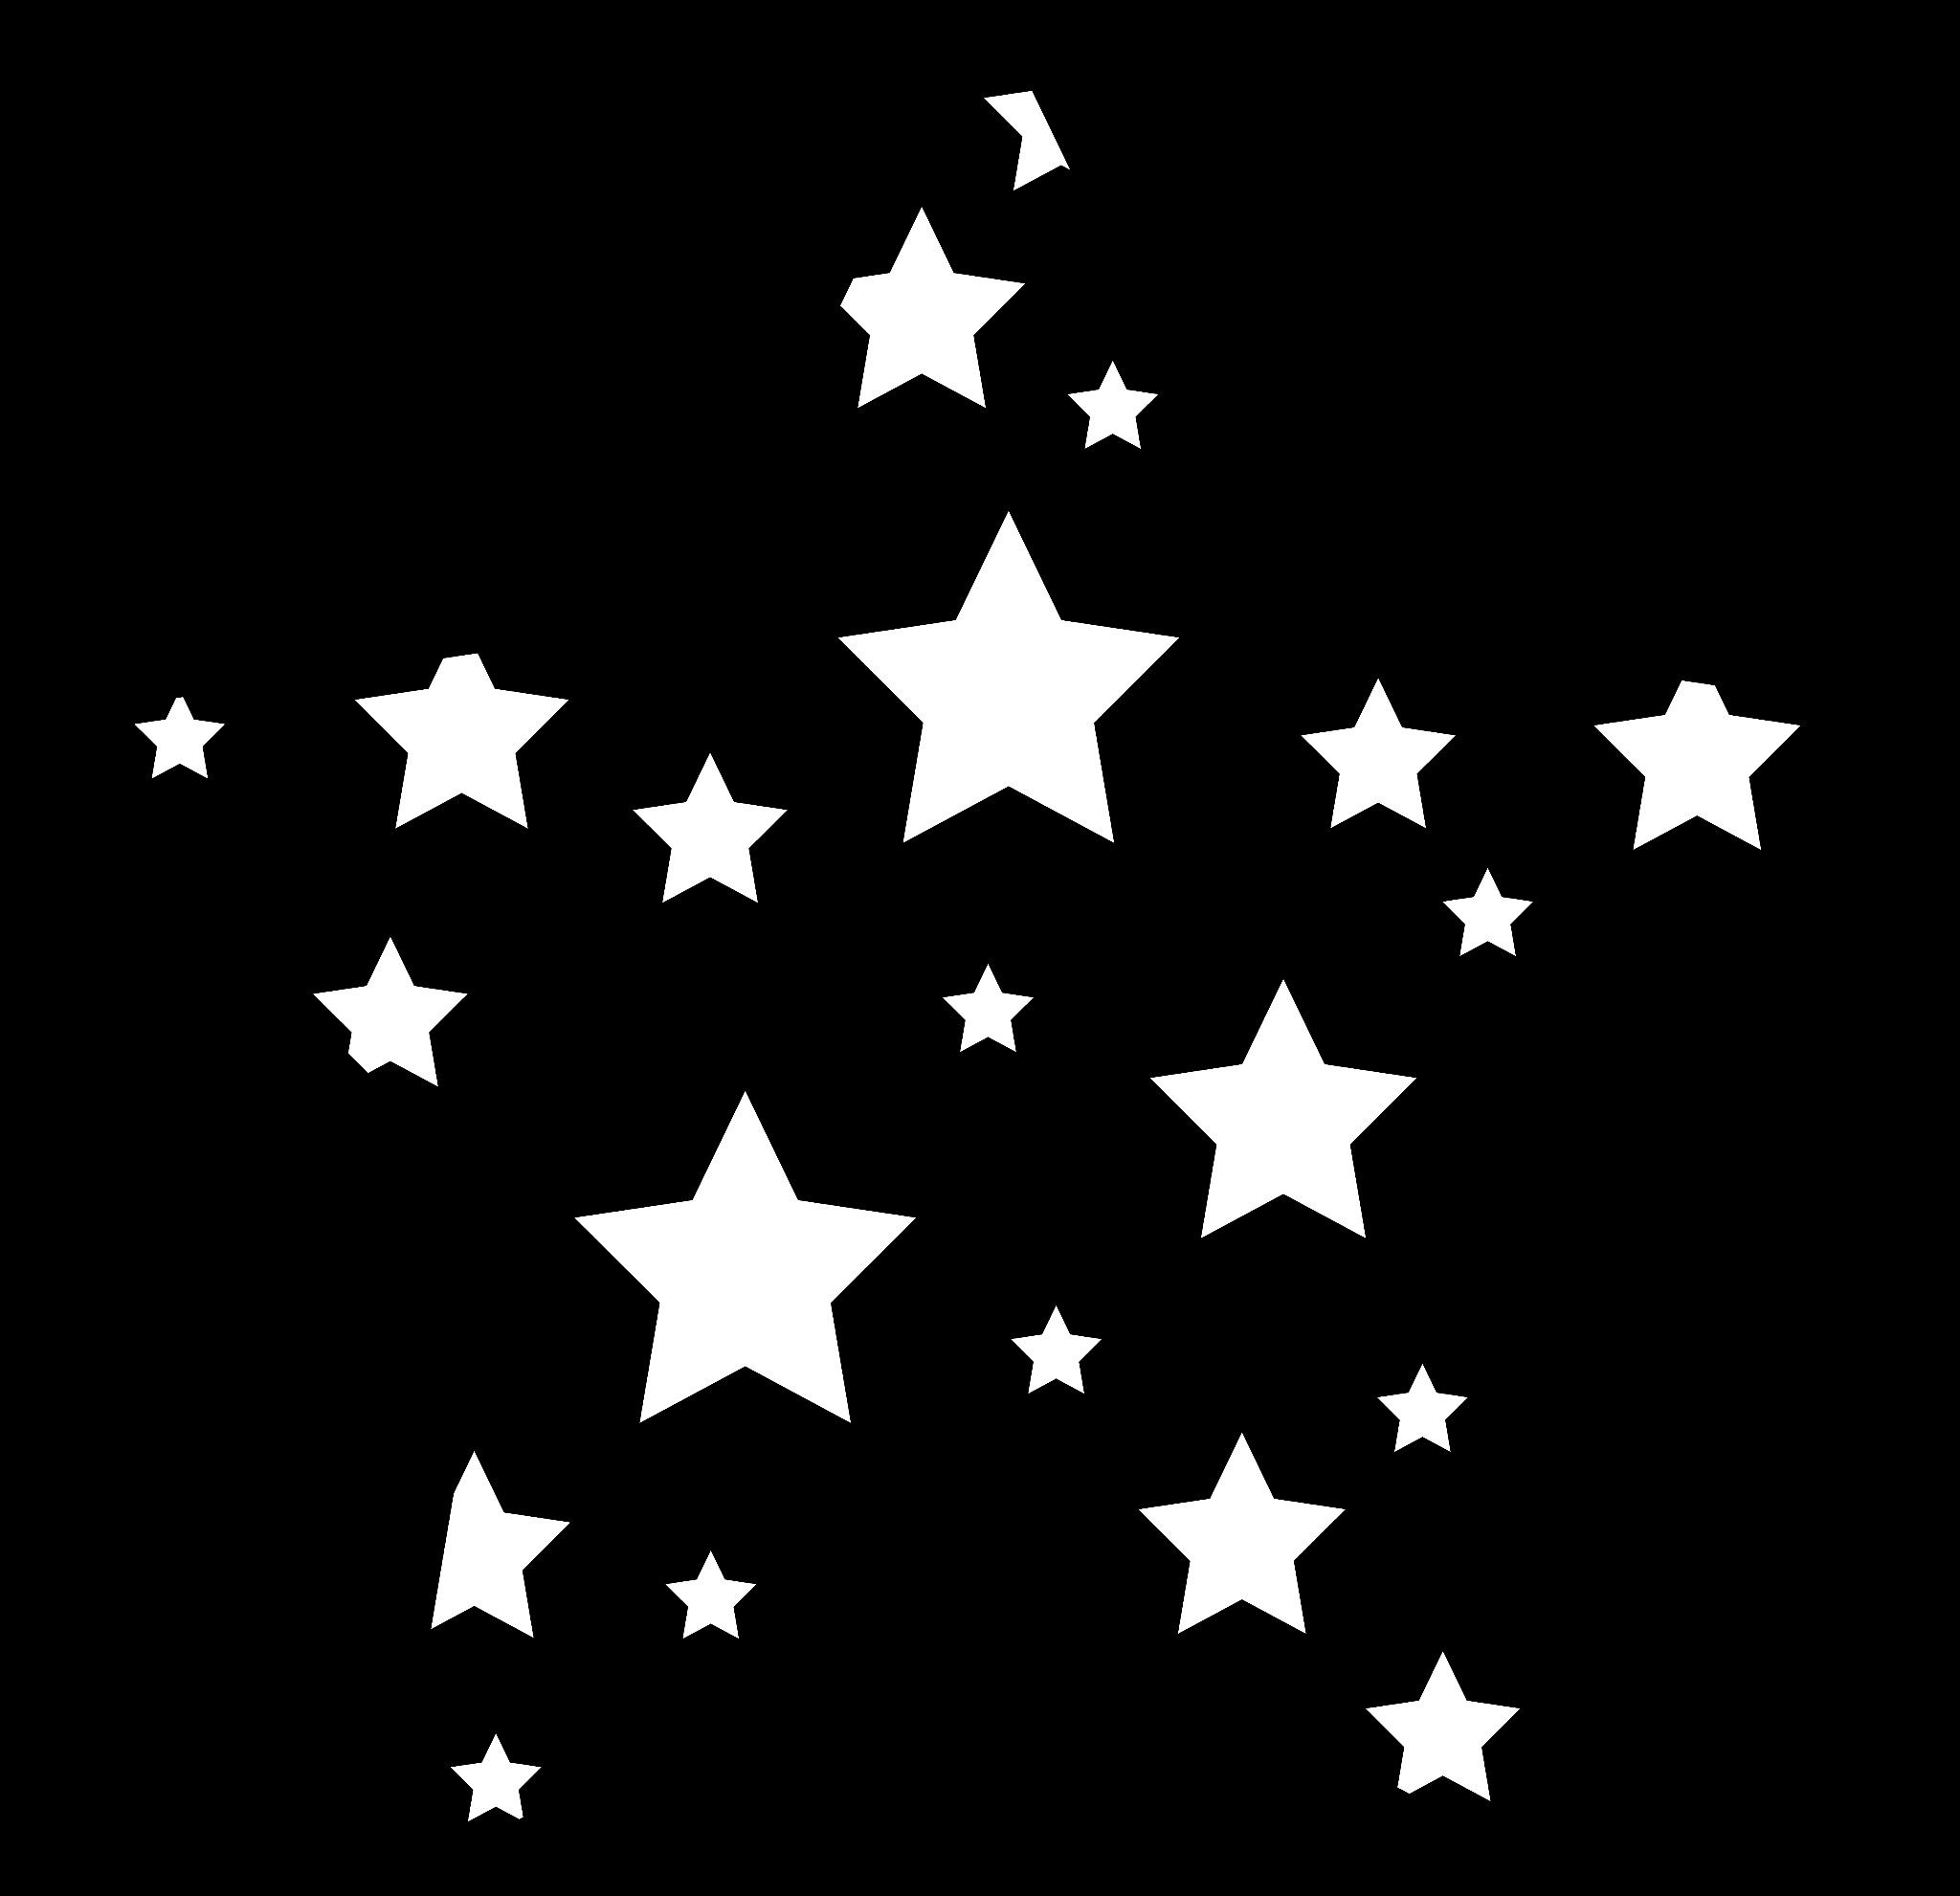 Stars Clipart Black And White Images